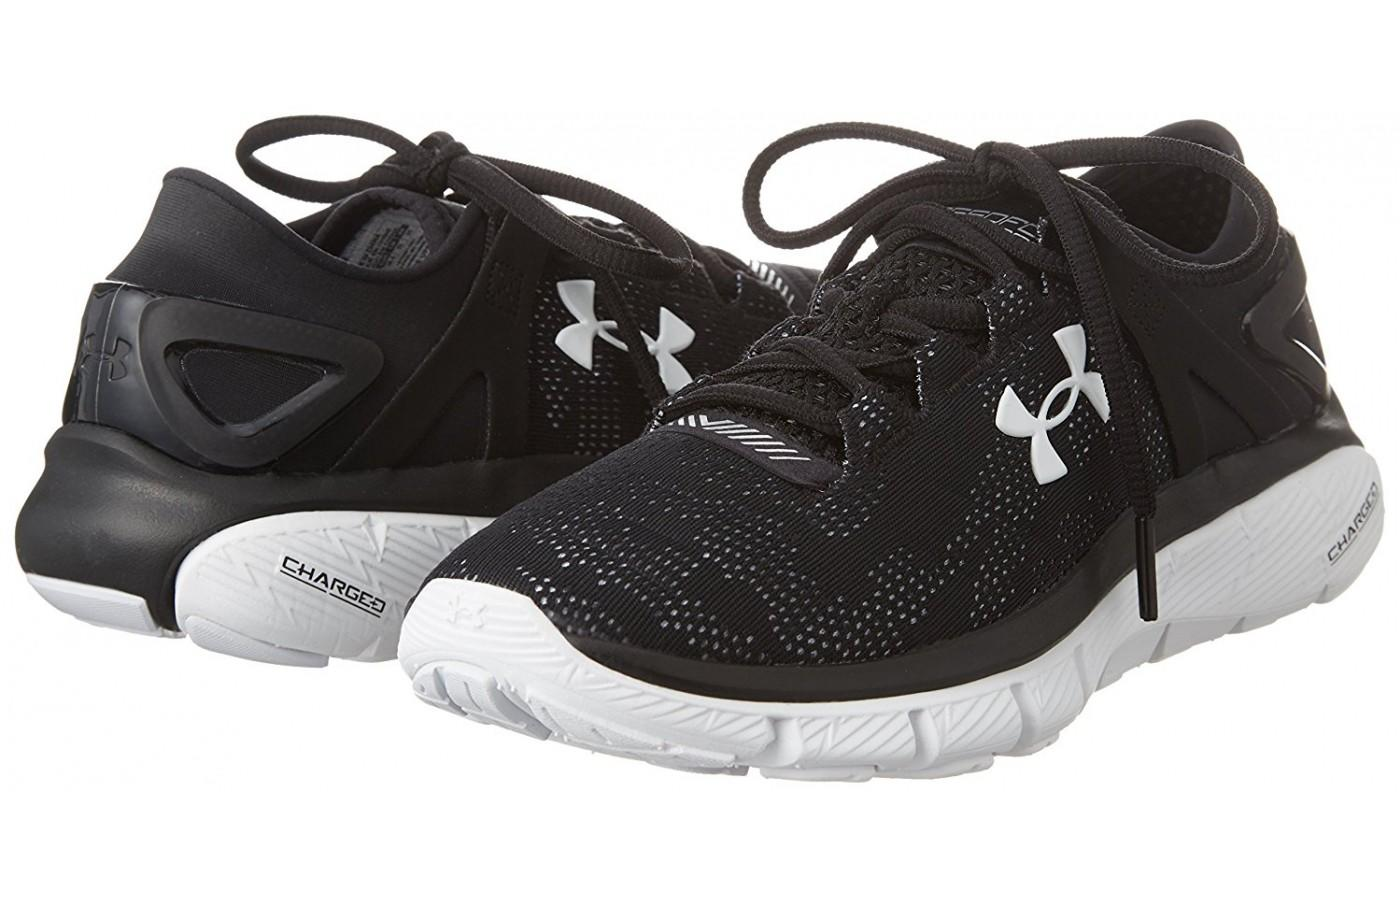 a pair of the Under Armour SpeedForm Fortis Vent